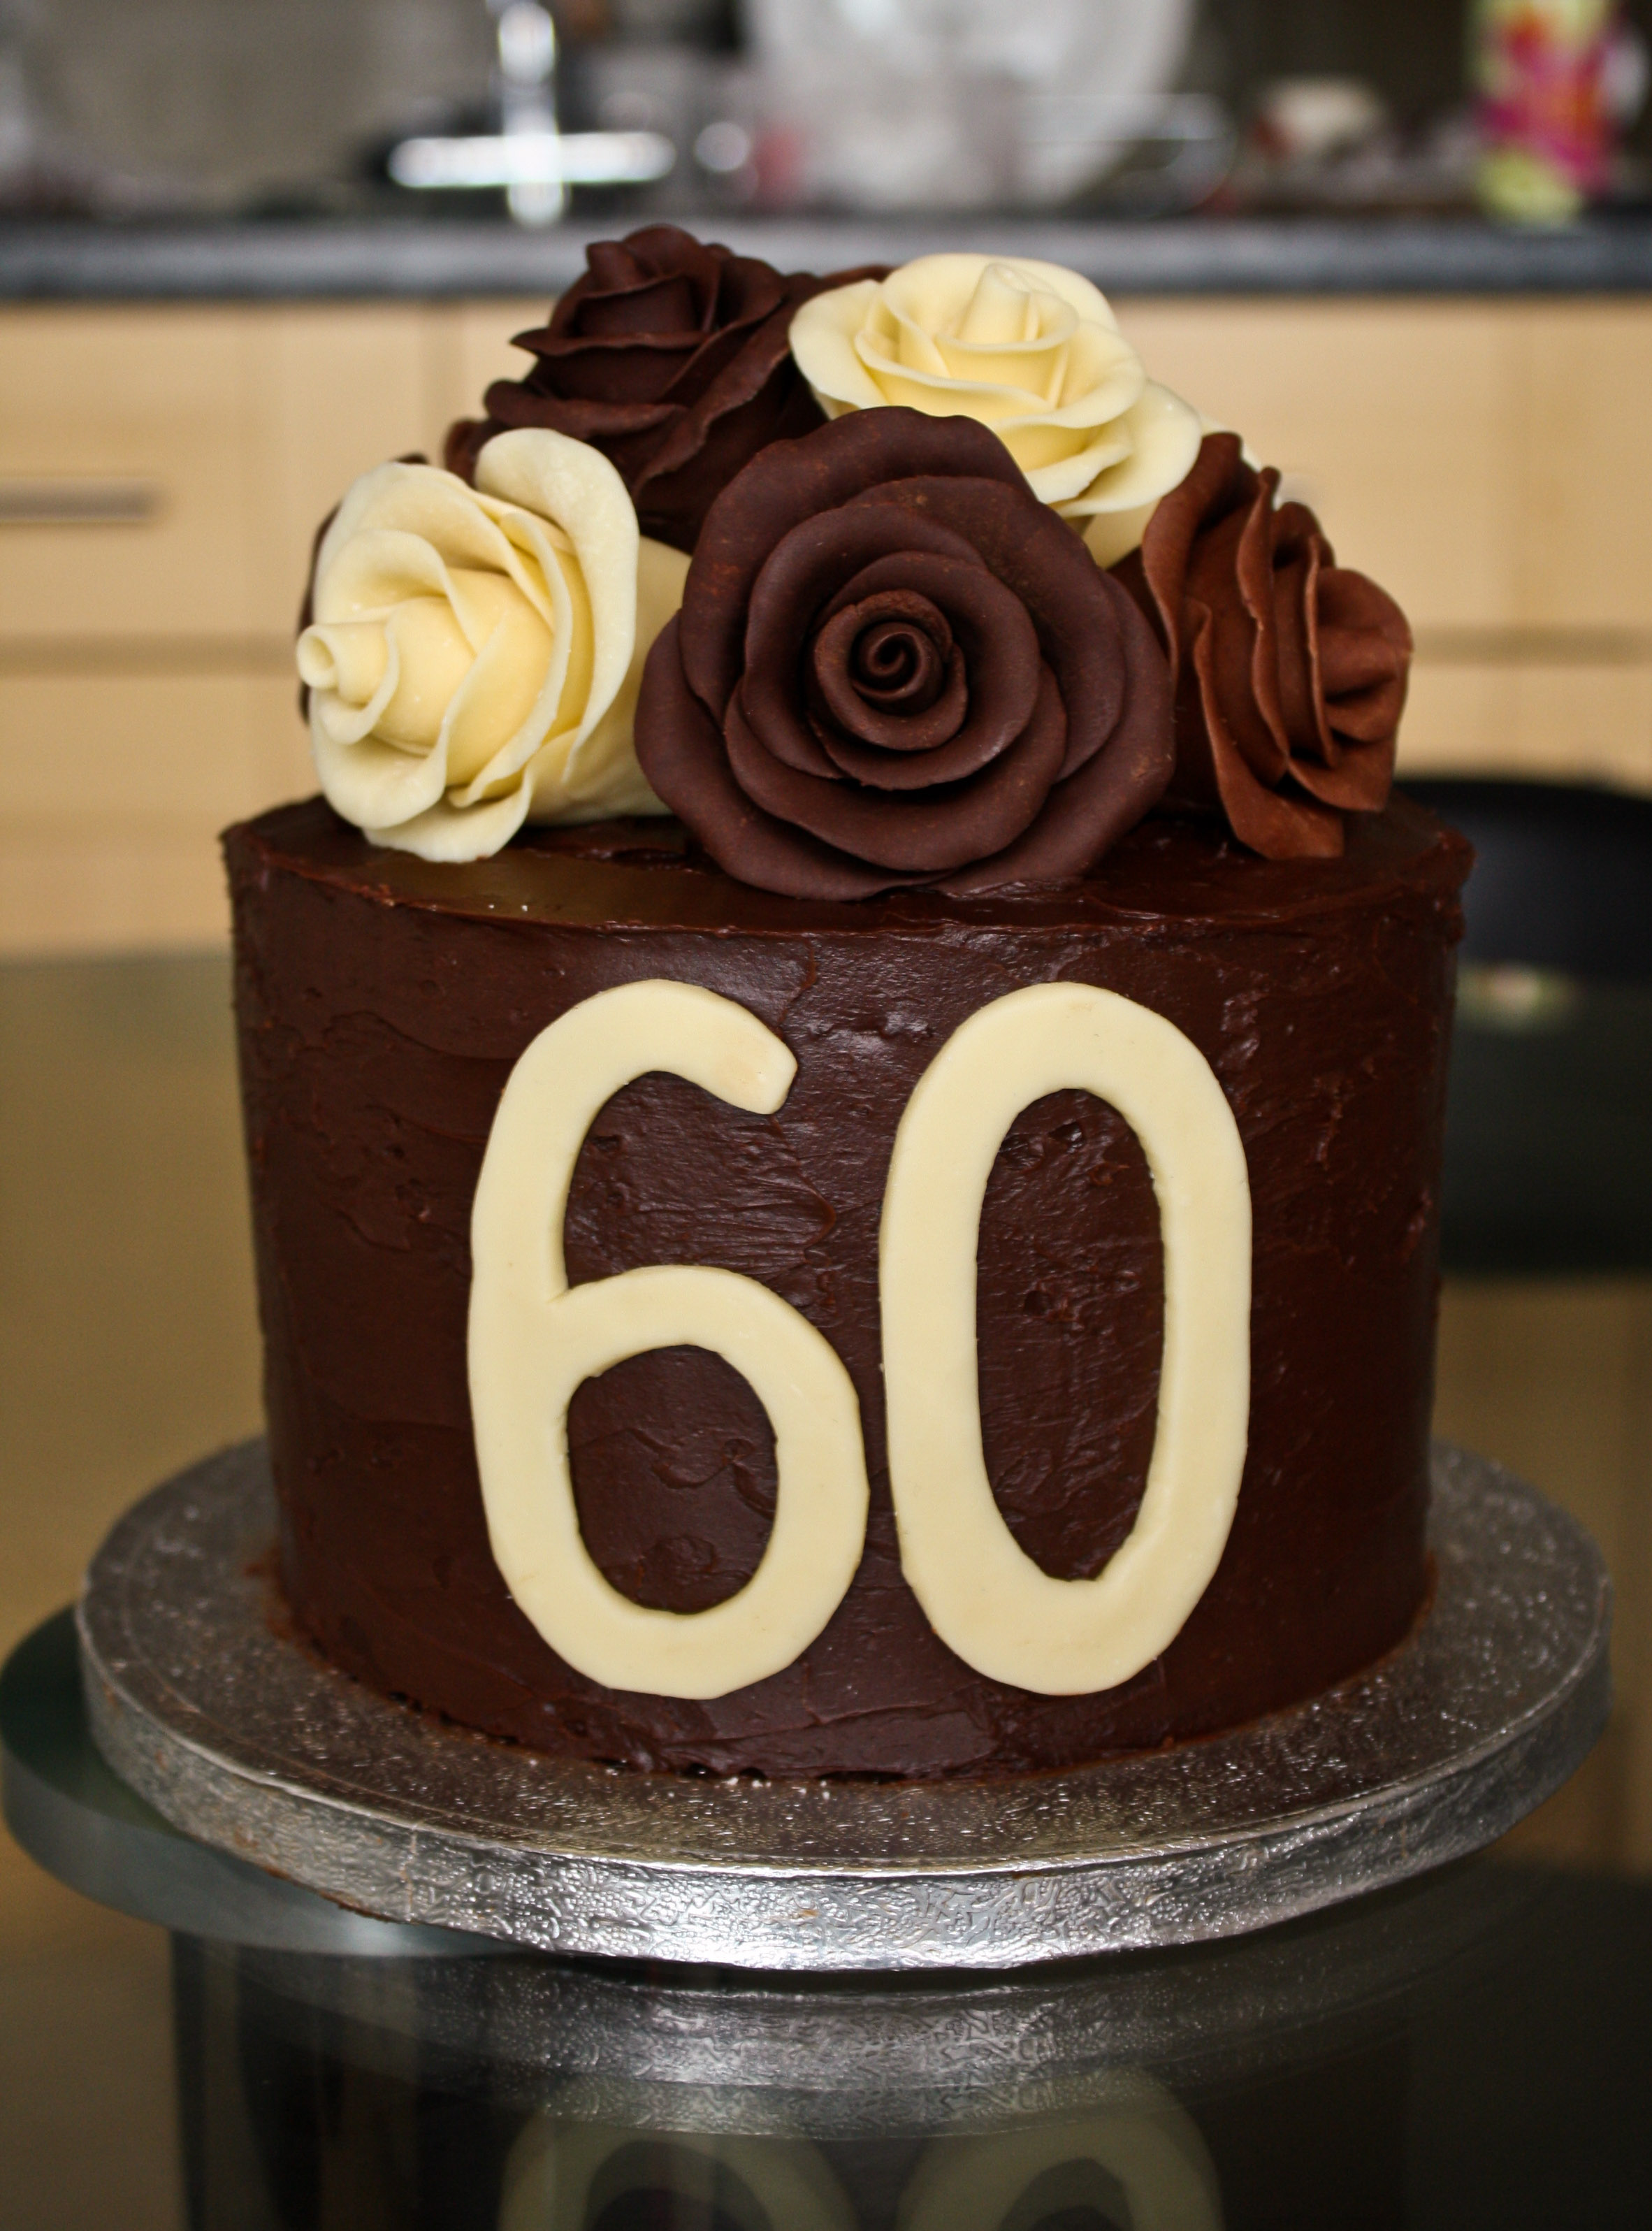 9 60th Birthday Cakes Ideas With Roses Photo